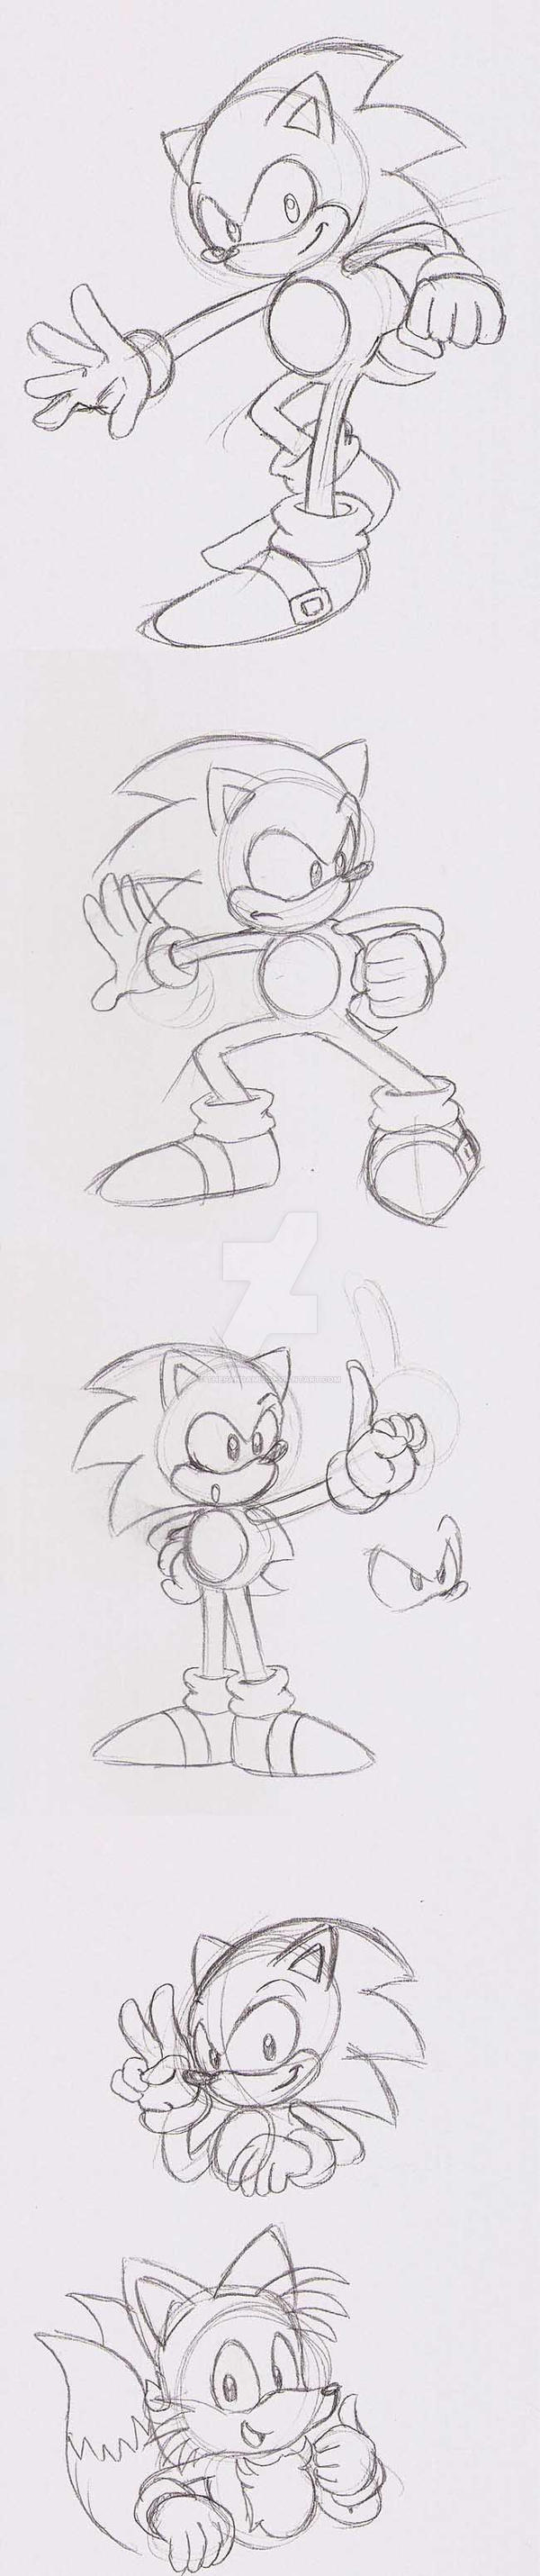 Classic Sonic Poses By Thepandamis On Deviantart